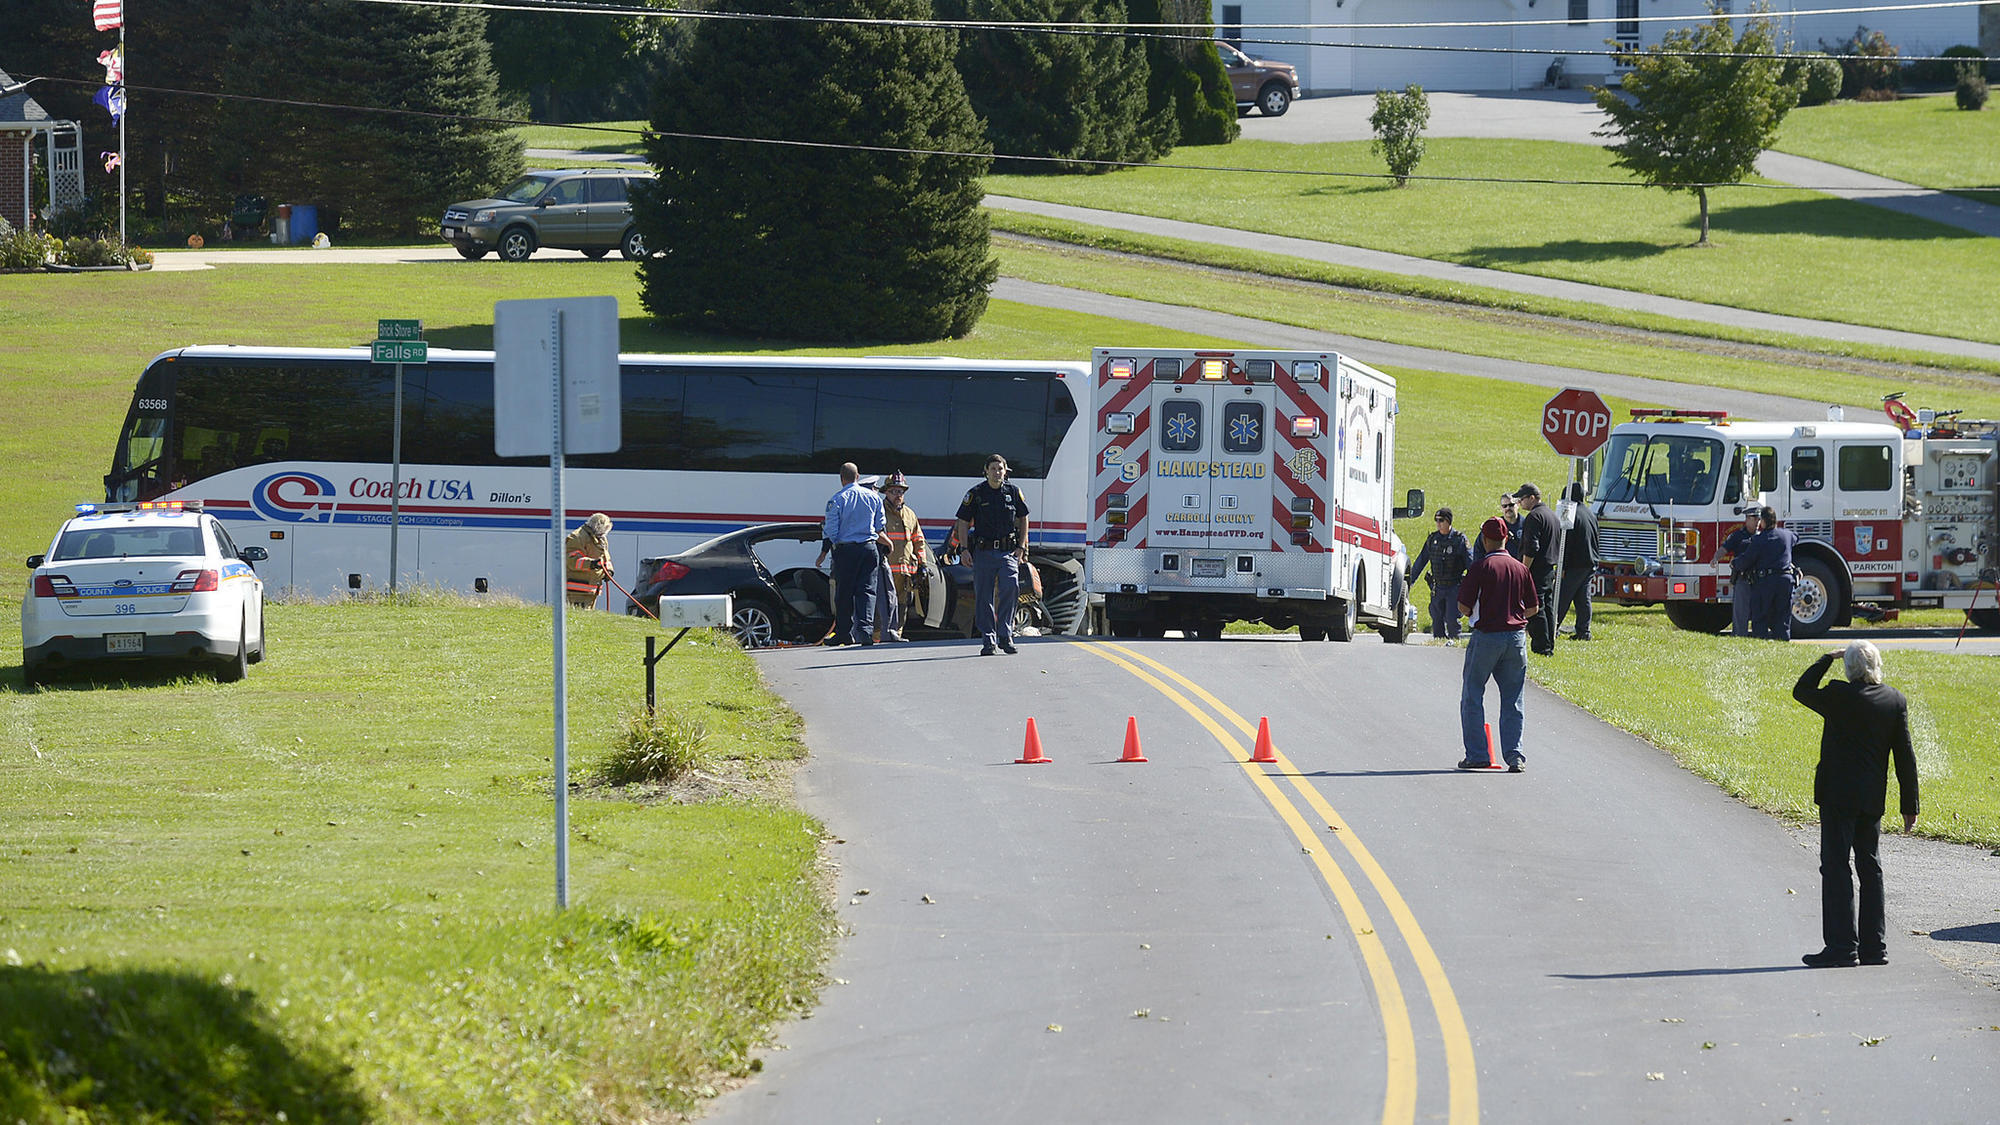 High school students rattled after fatal charter bus crash in Baltimore County | Baltimore Sun